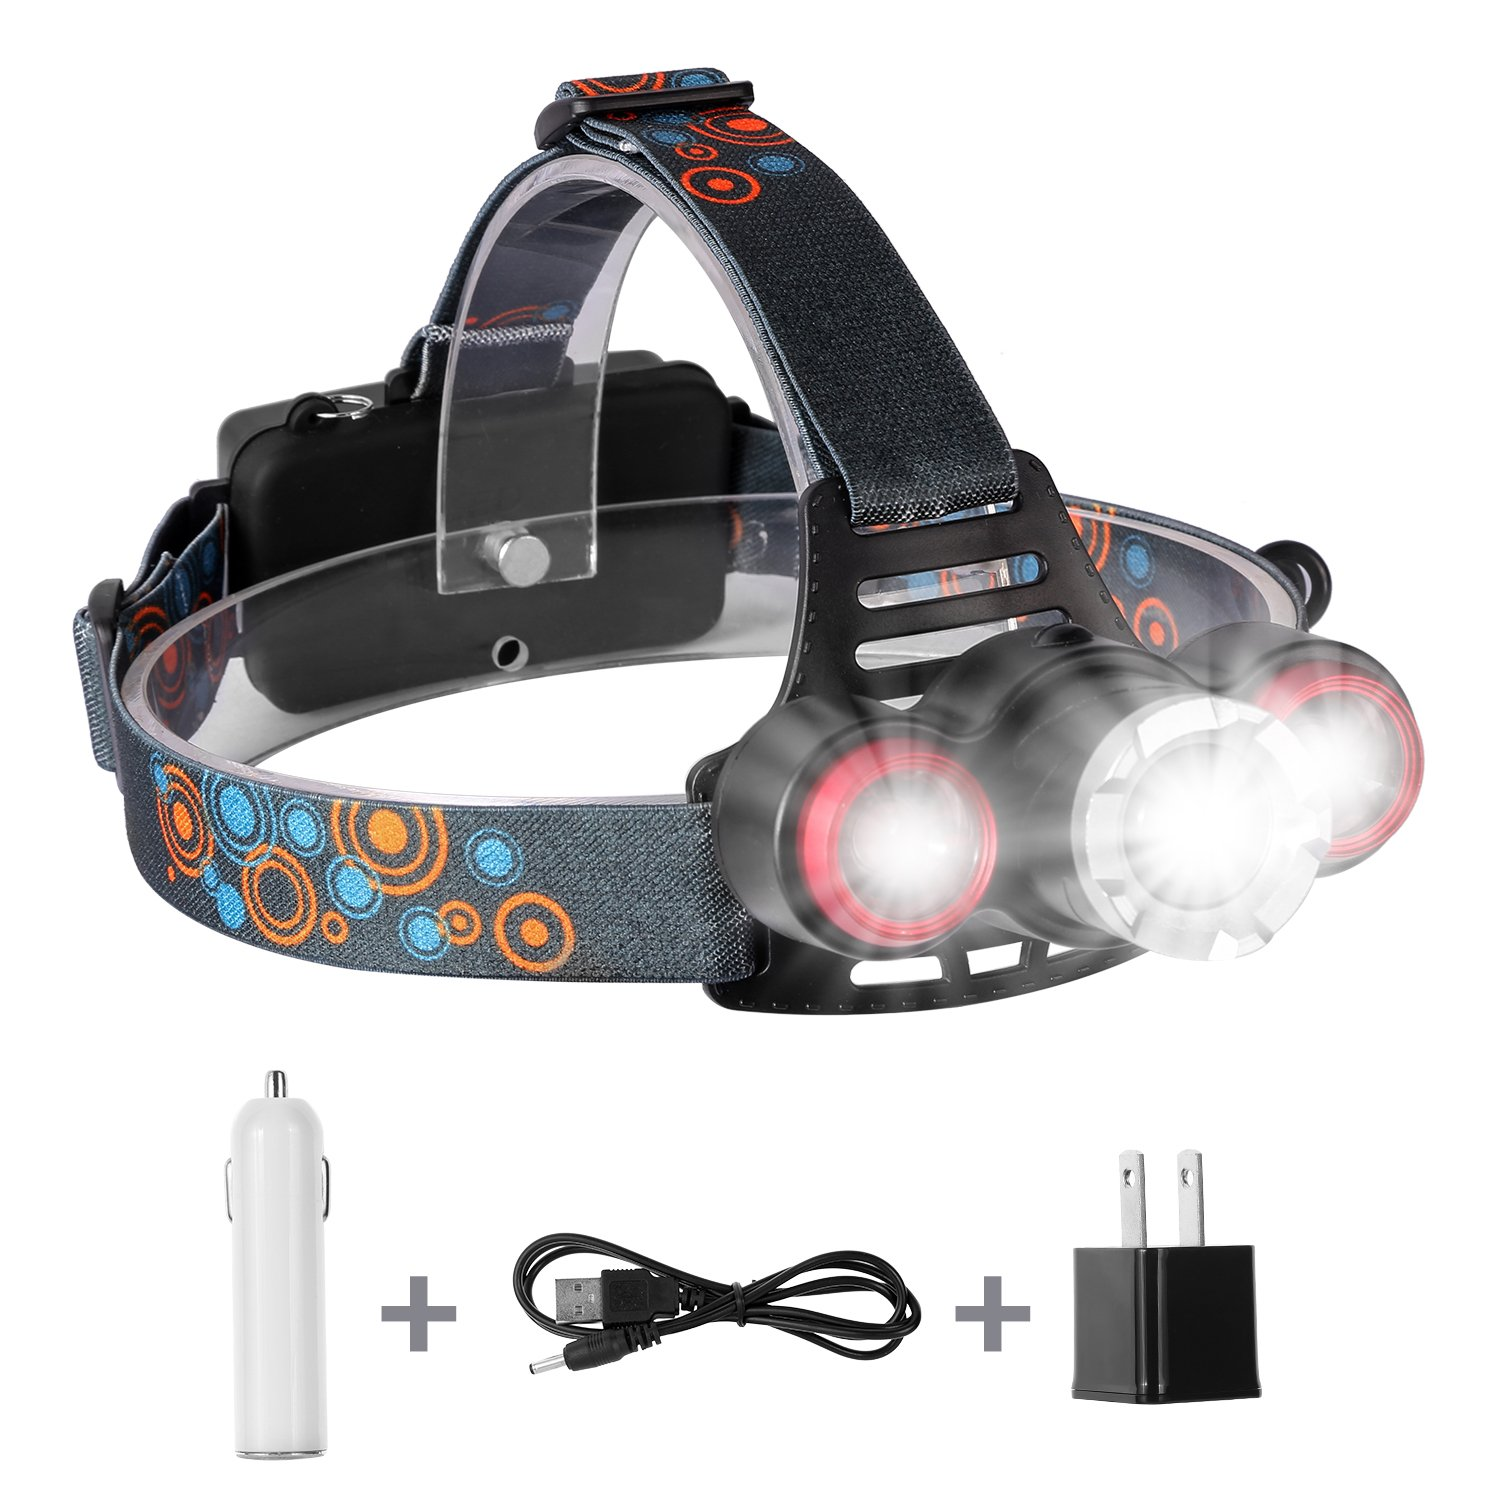 yIFeNG LED Headlamp, Zoomable Super Bright Headlight, Perfect for Camping Hunting Fishing